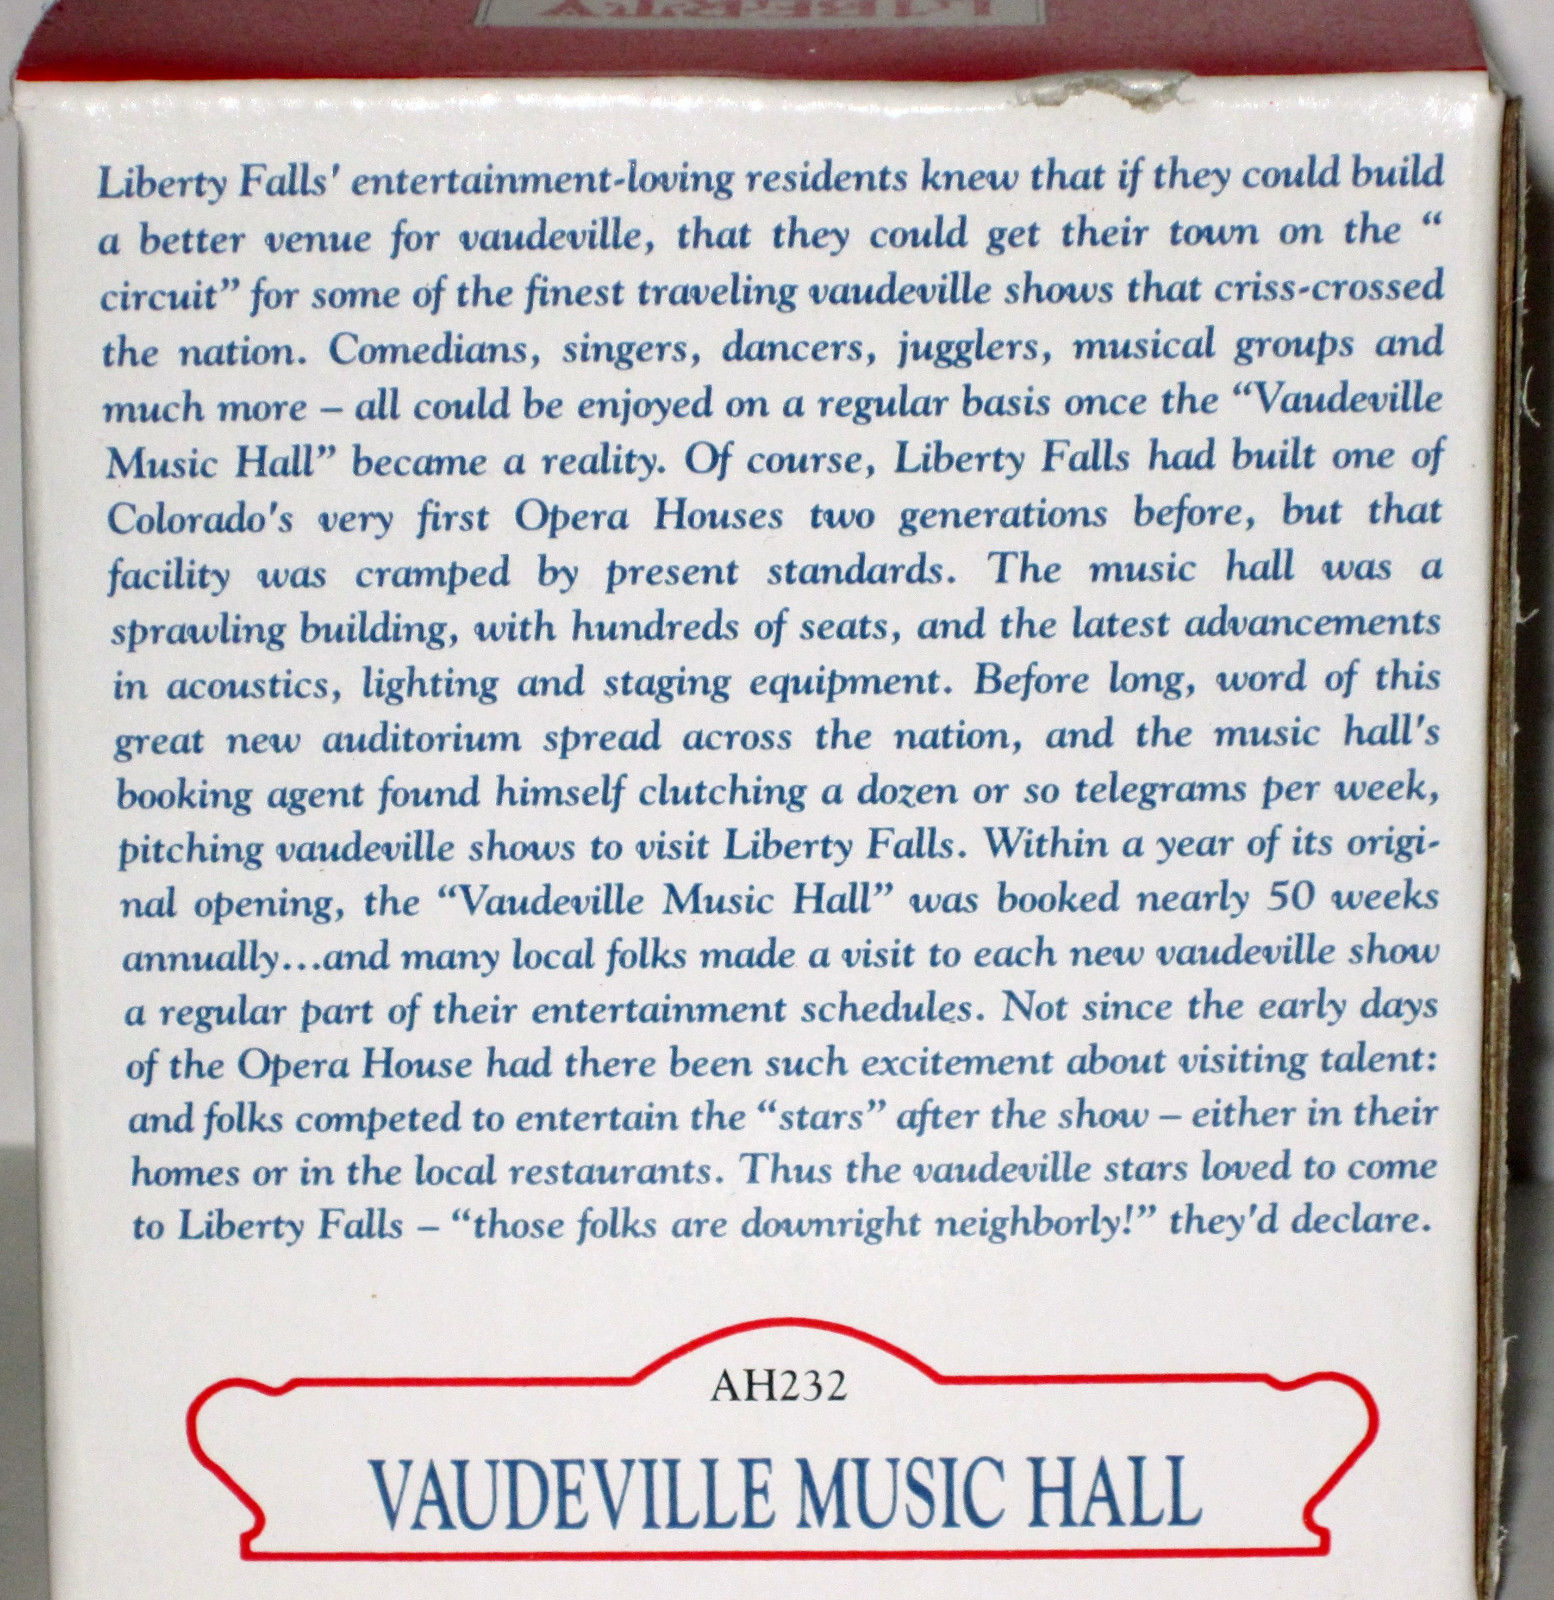 MIB 2001 LIBERTY FALLS VAUDEVILLE MUSIC HALL AH232 Americana Collection Village